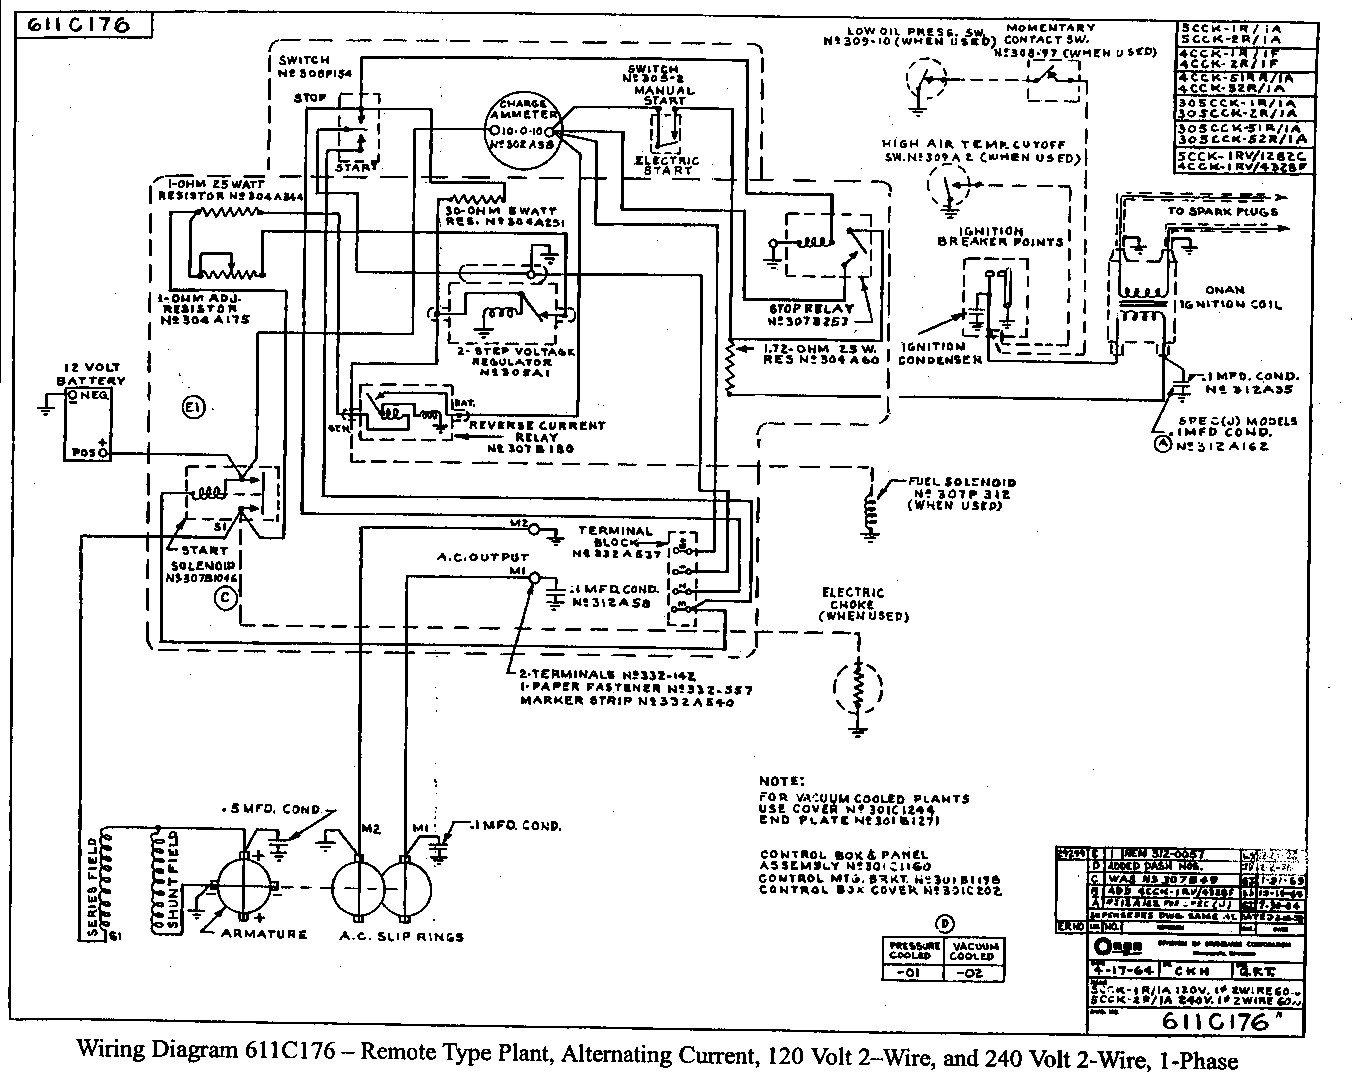 onan 4000 generator wiring diagram toyota land cruiser for emerald serial